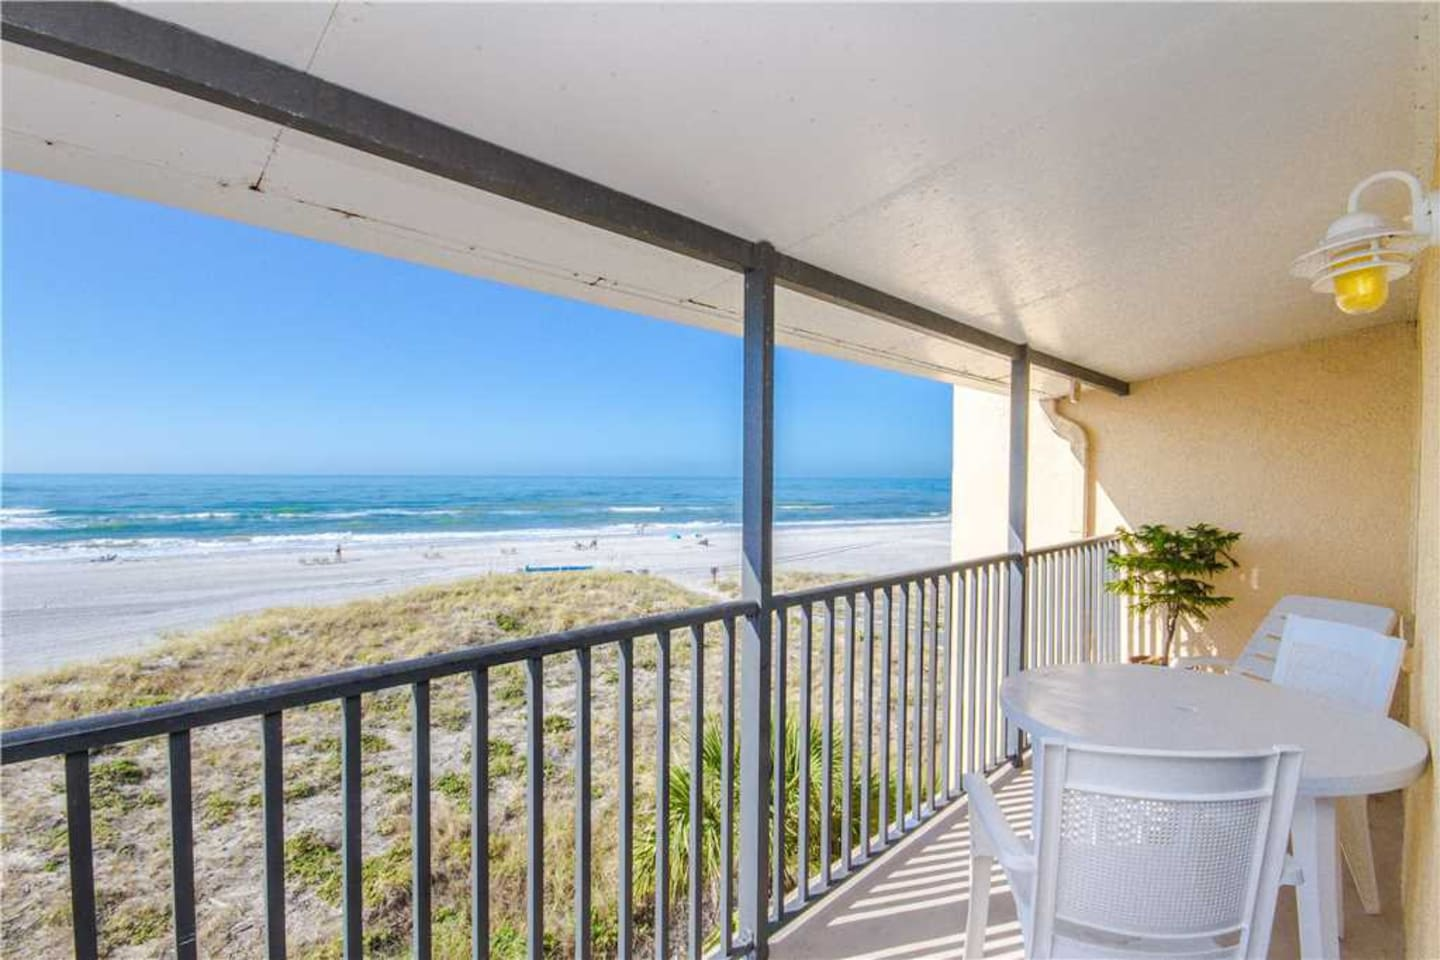 Direct Beach & Gulf Views from Covered Balcony Granite Kitchen & Upgrades Throughout - Sleeps 4 - Free Wifi - #349 Surf Song Resort